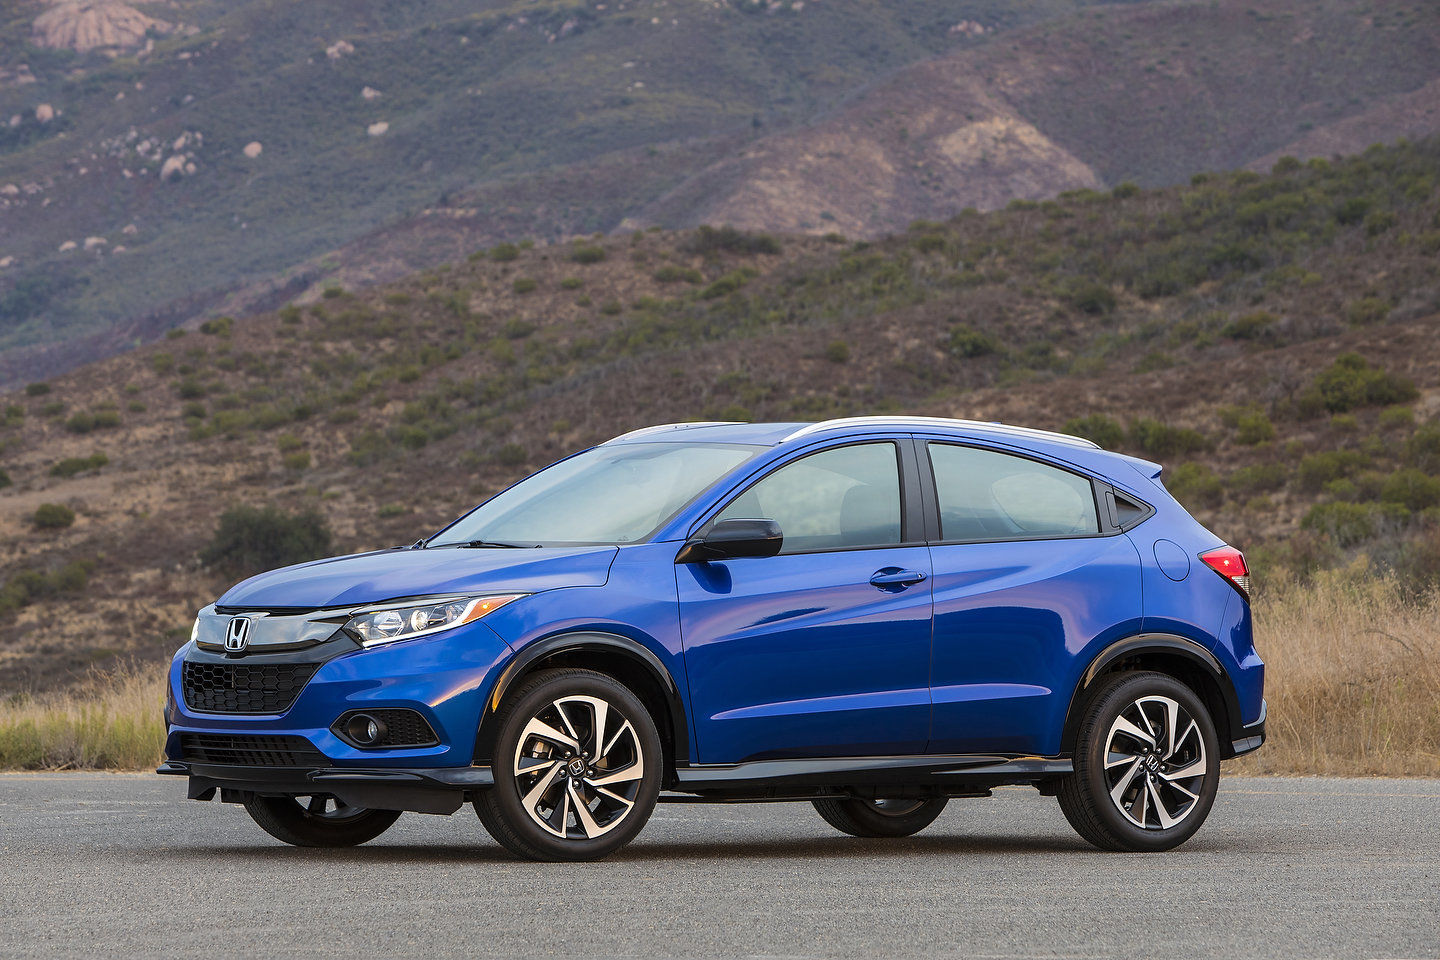 2019 Honda HR-V: All under a compact roof